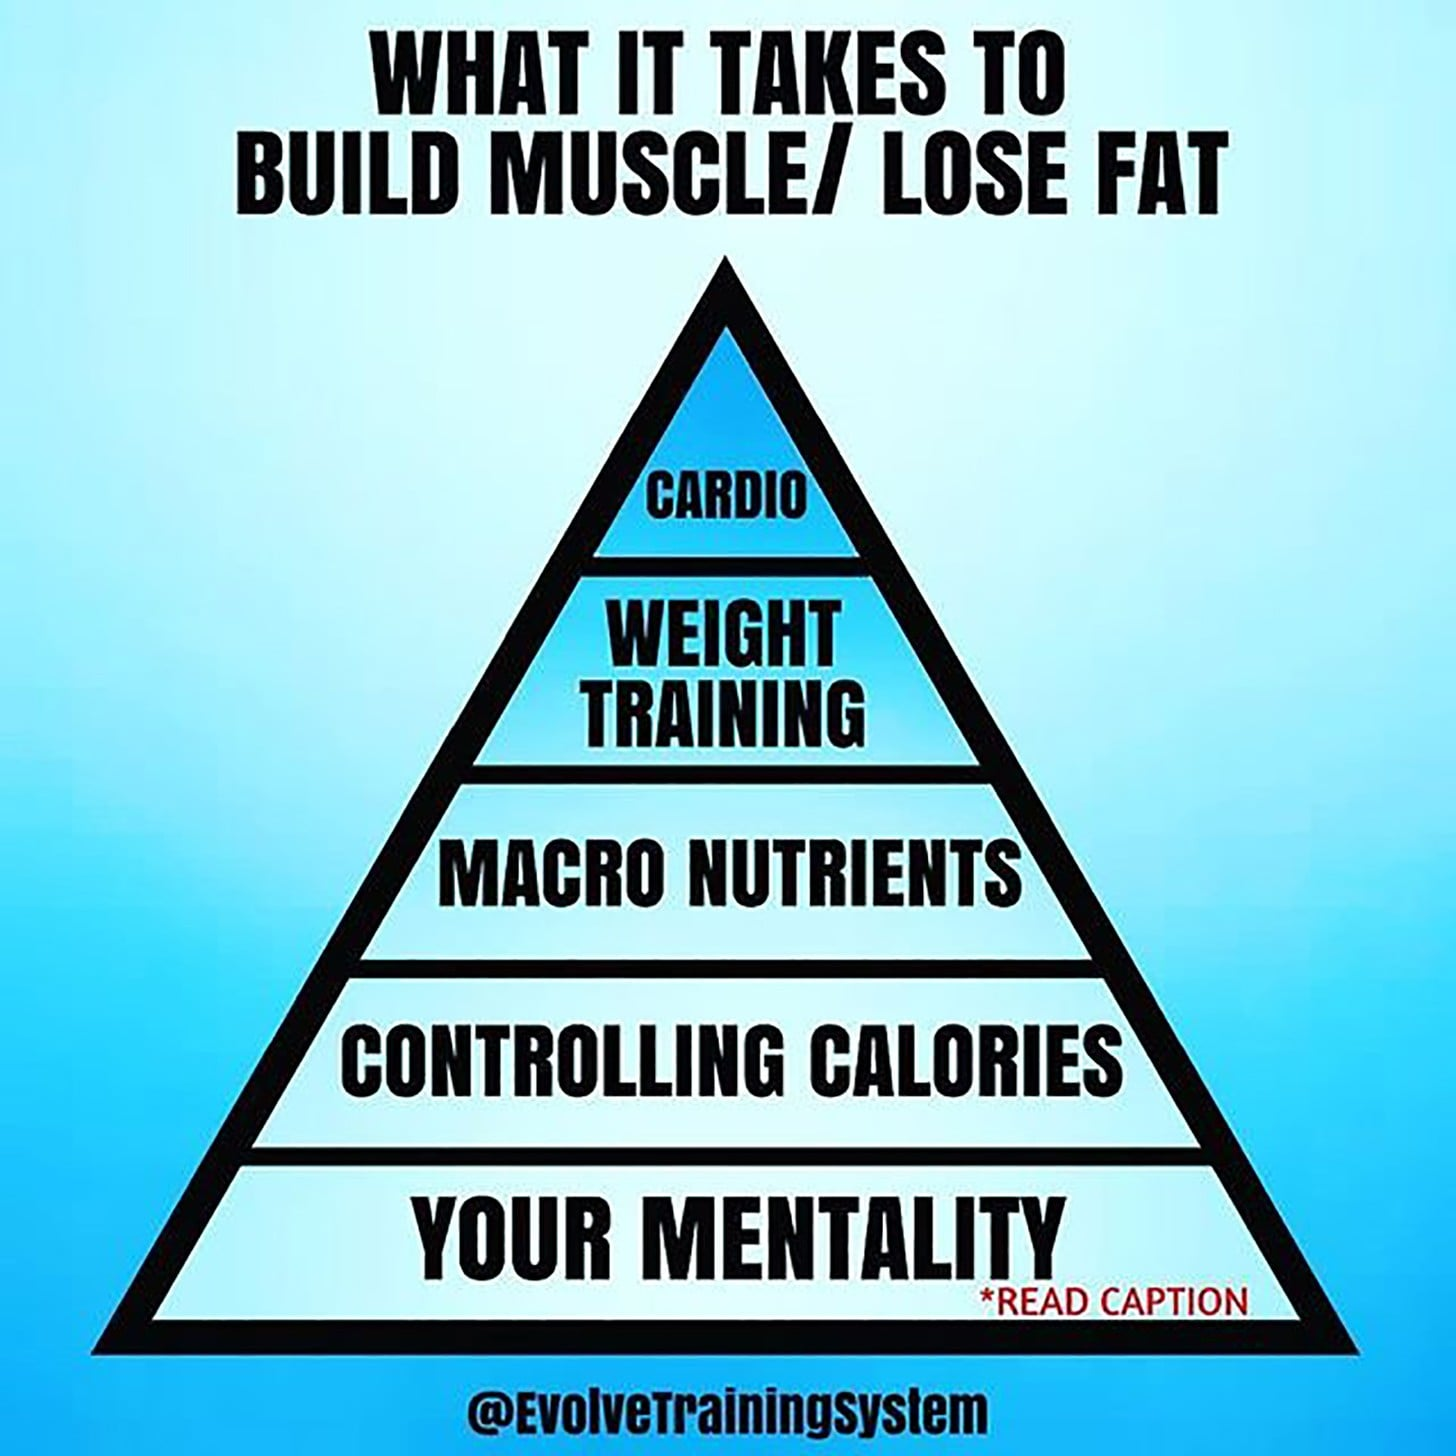 Ways to lose weight fast even if its unhealthy